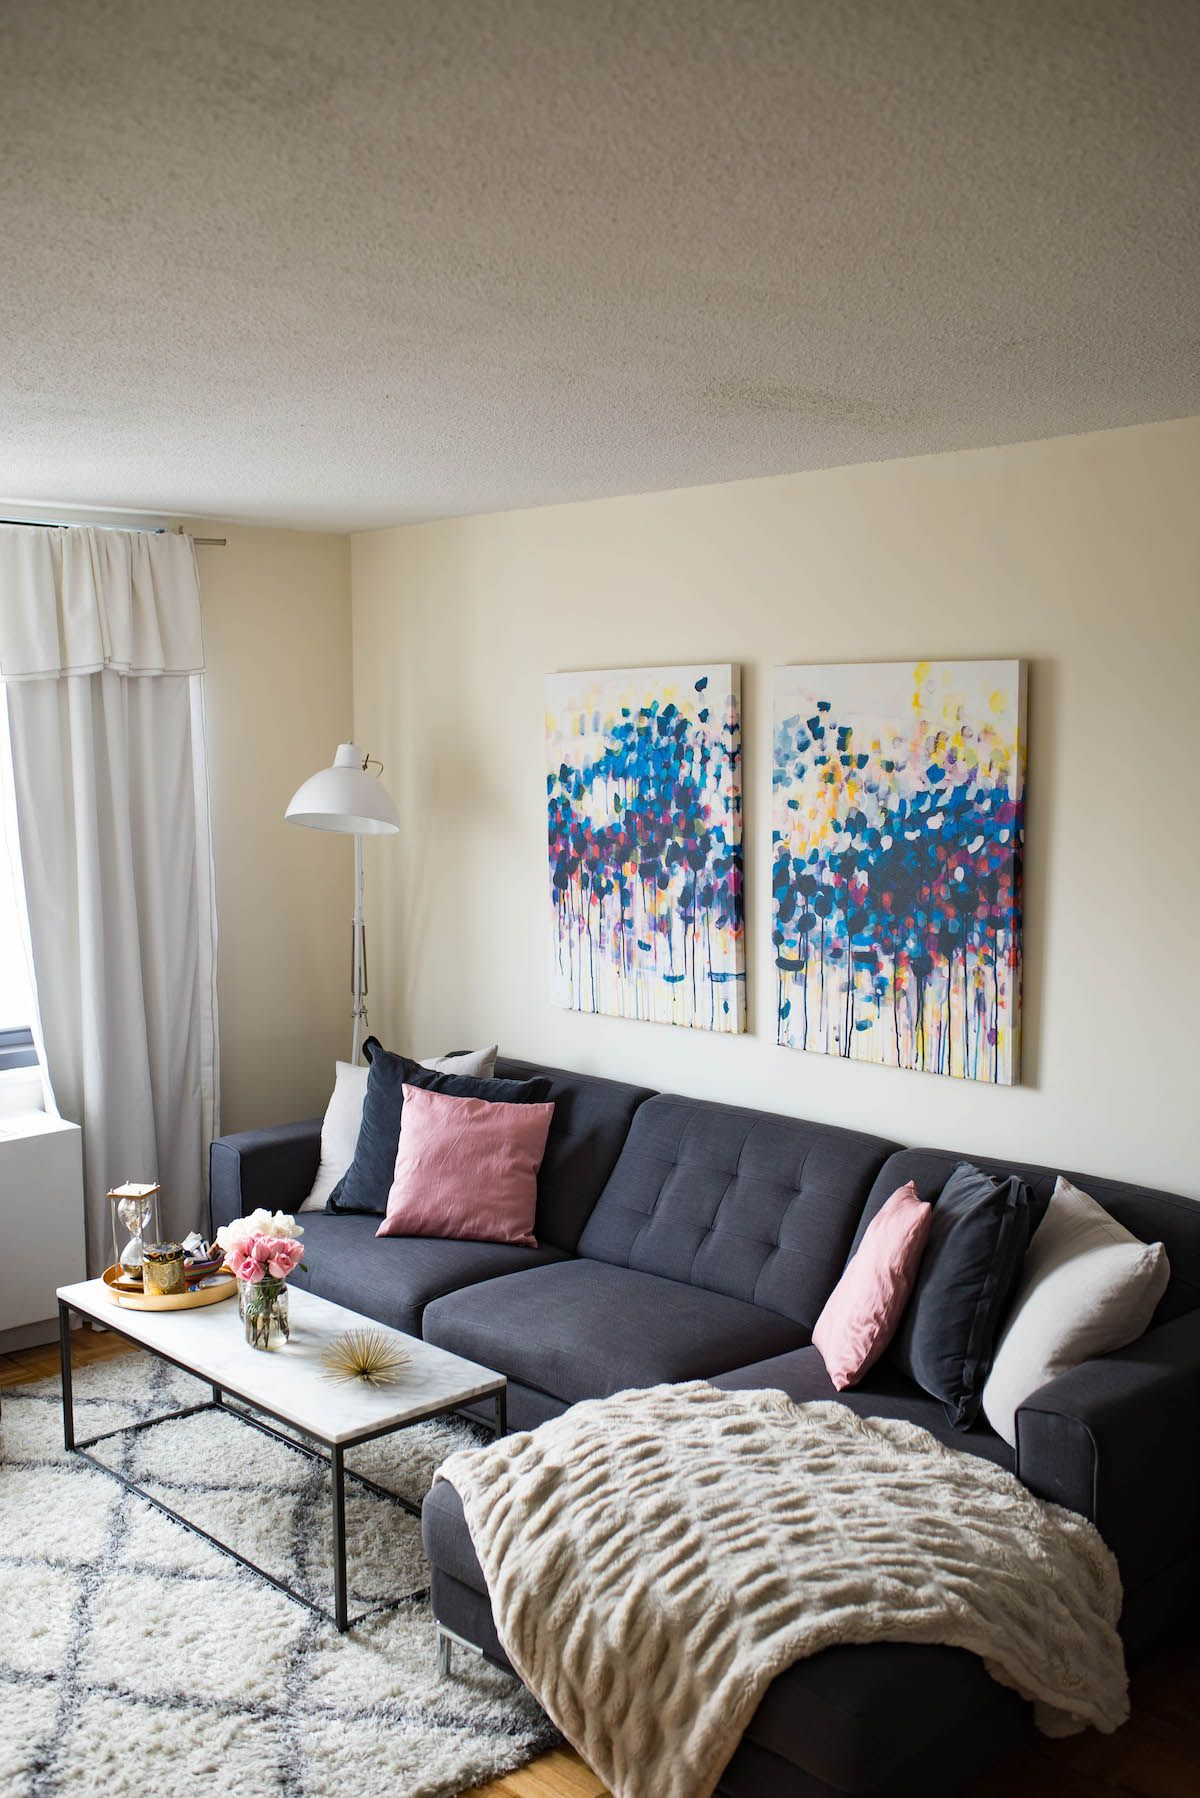 Easy Ways To Start Decorating Like A Pro Home Decor Tips Simple